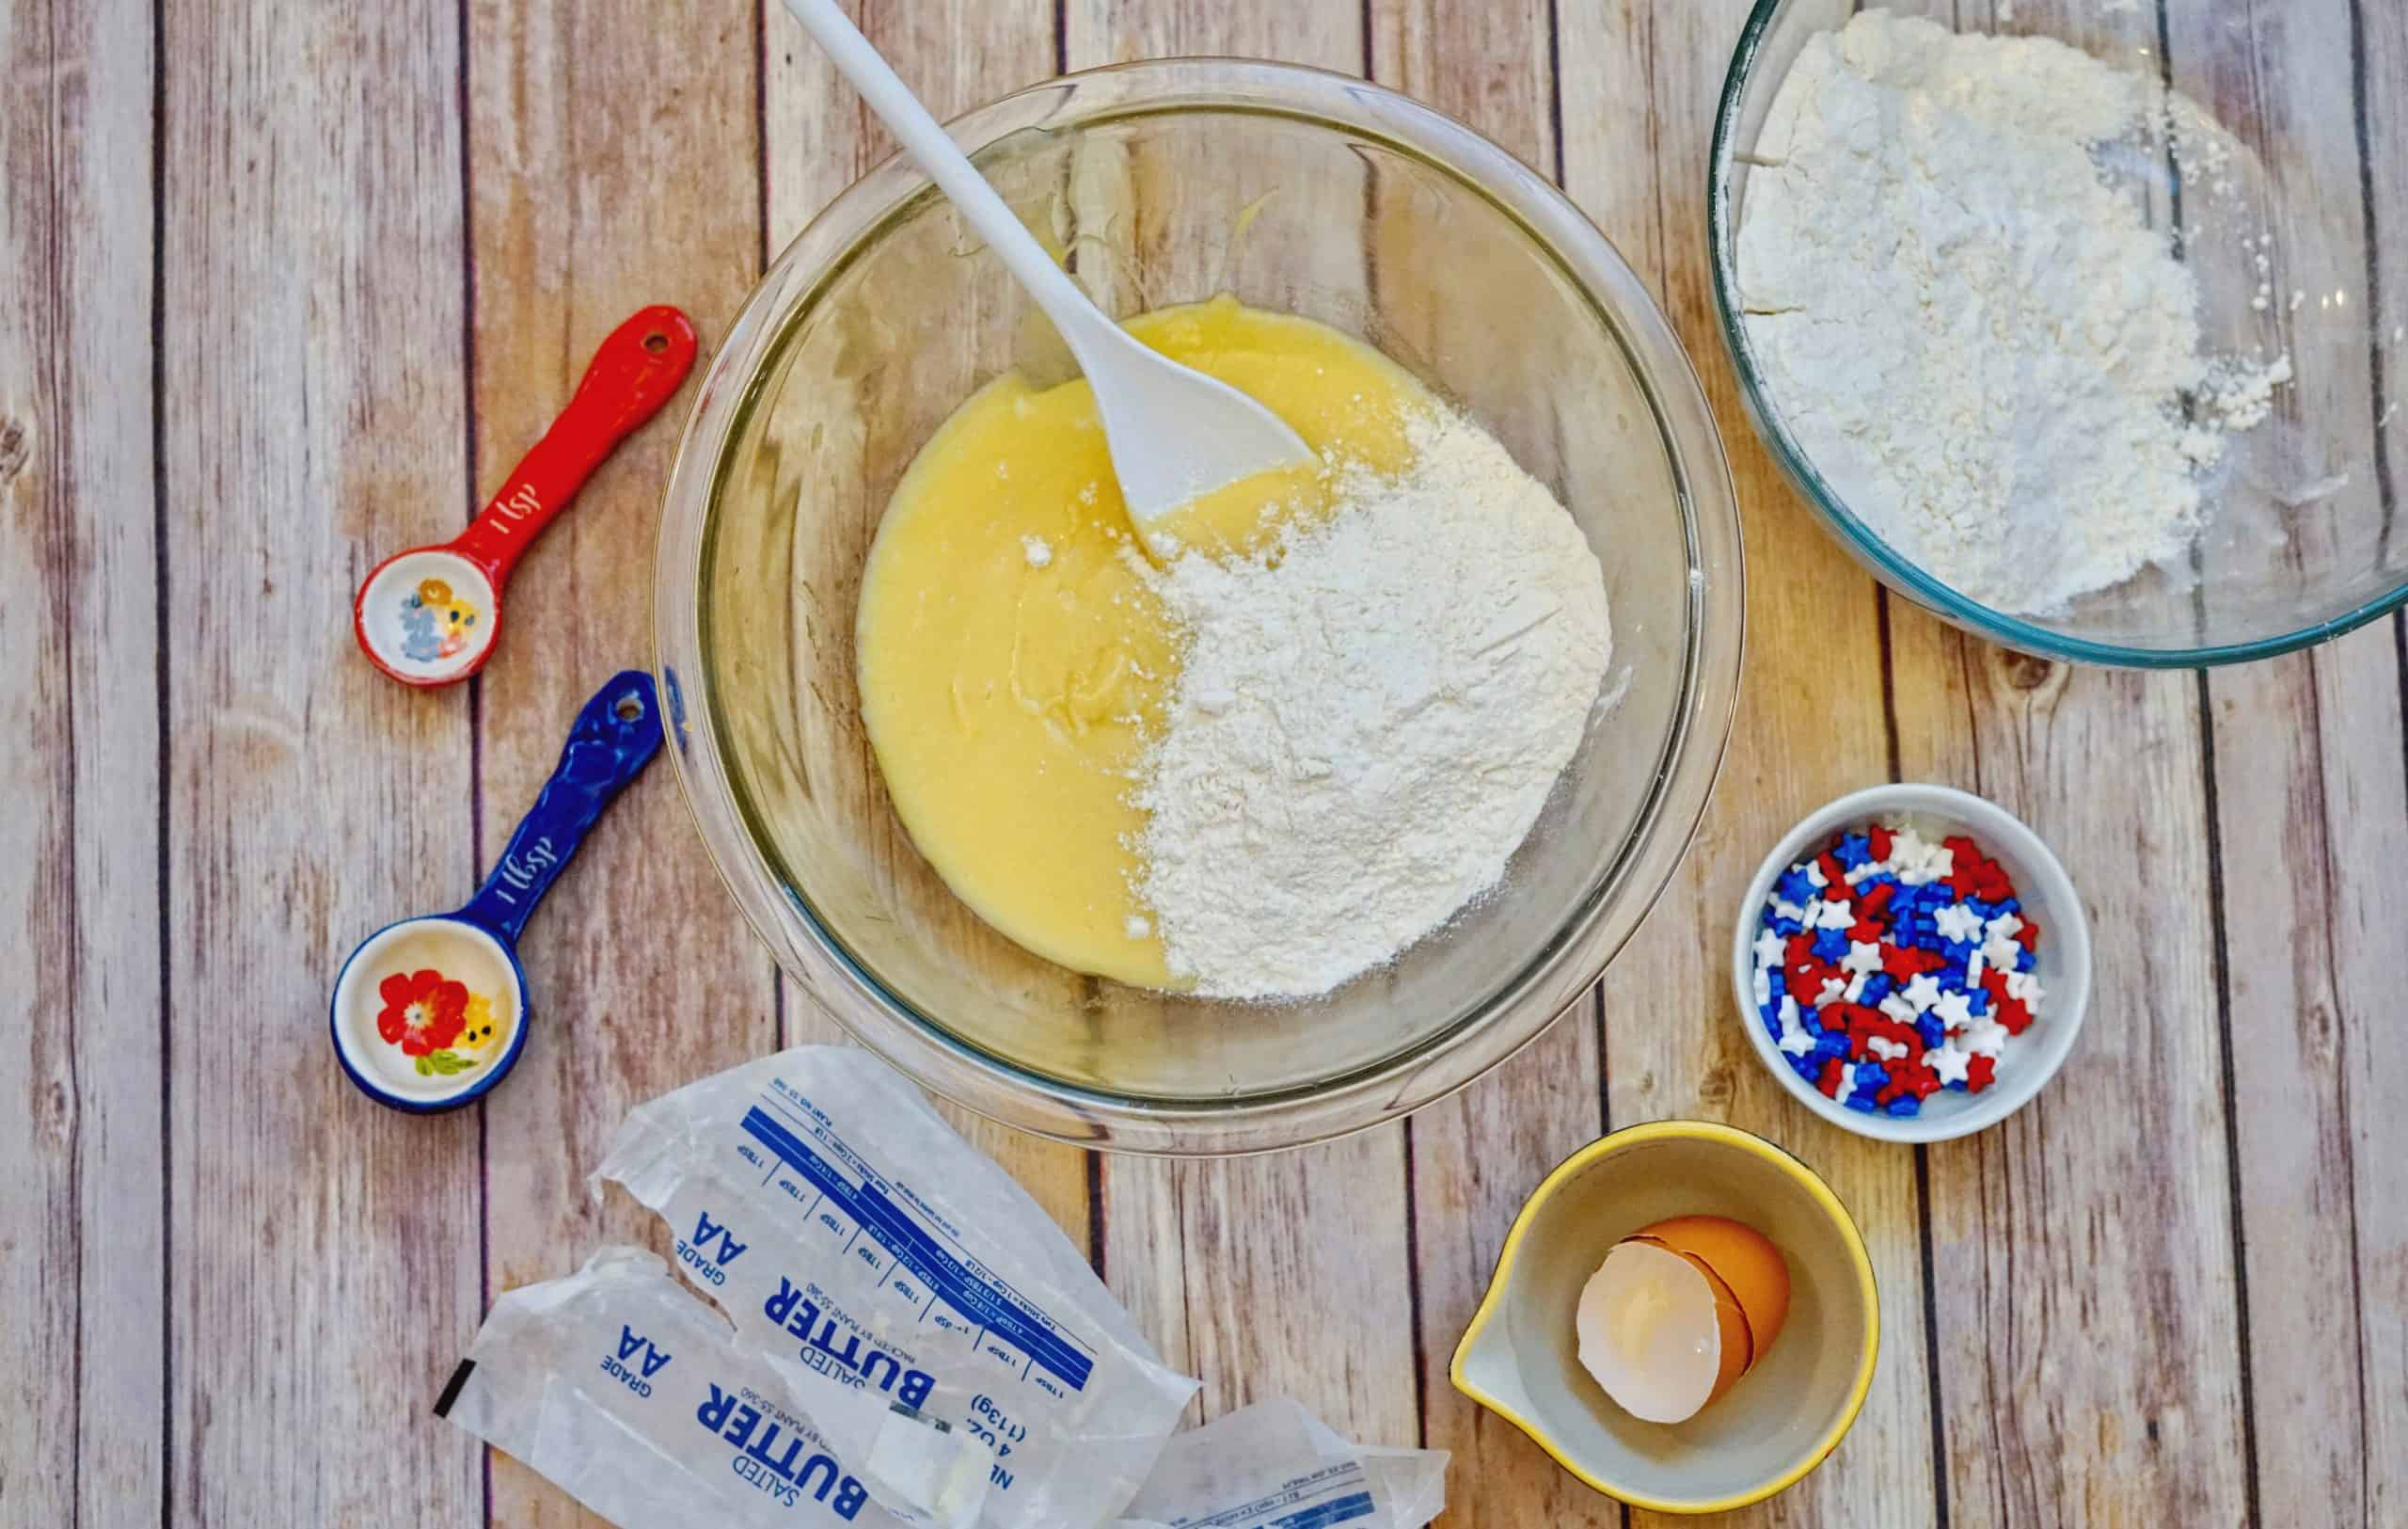 ingredients for patriotic sugar cookies being mixed in bowl